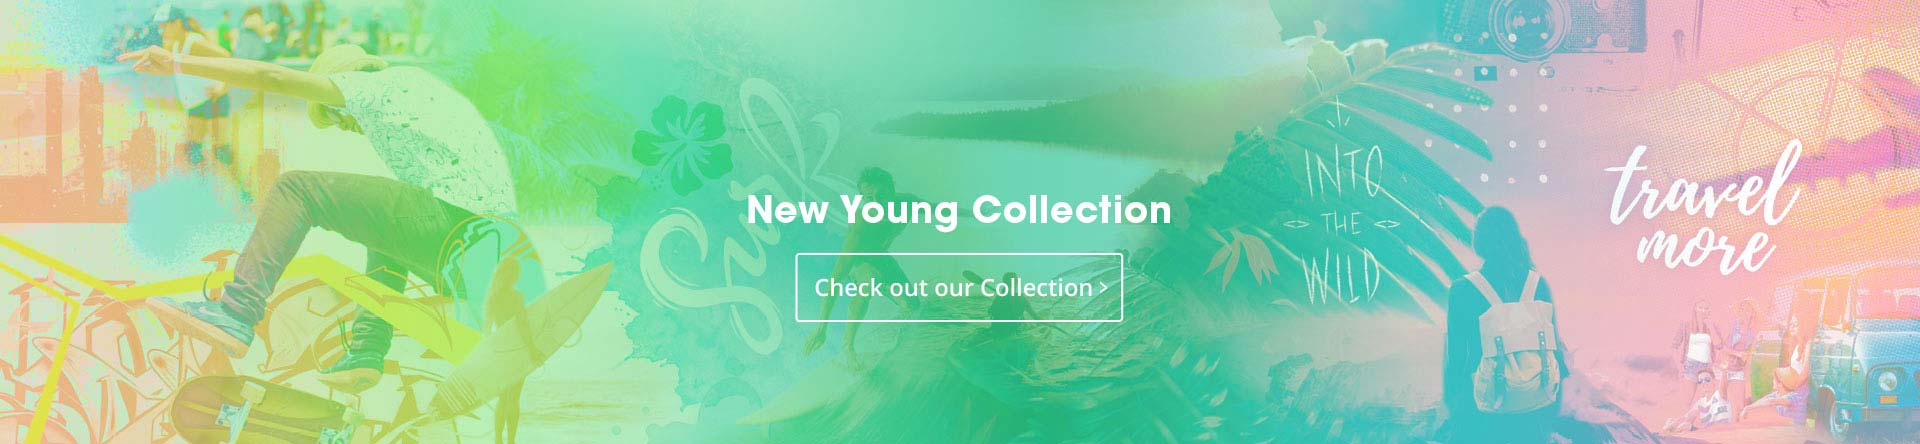 New Young Collection